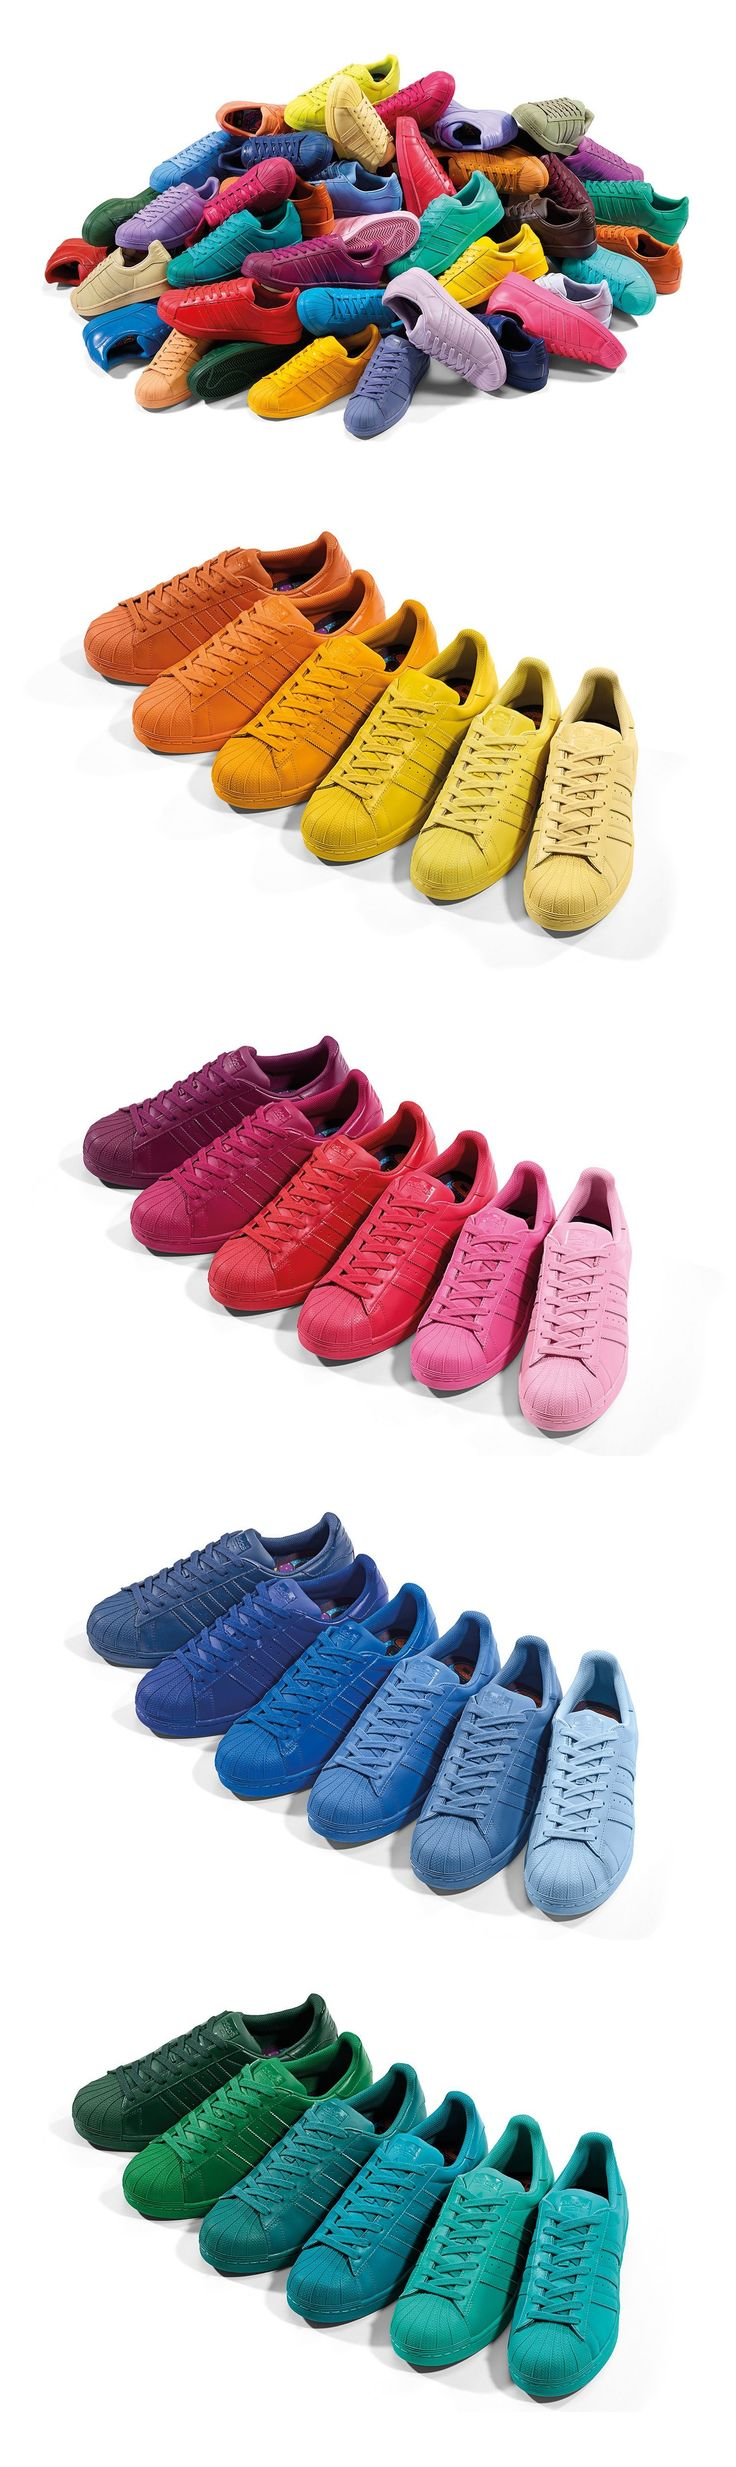 Pharrell Williams x adidas Originals Superstar Supercolor